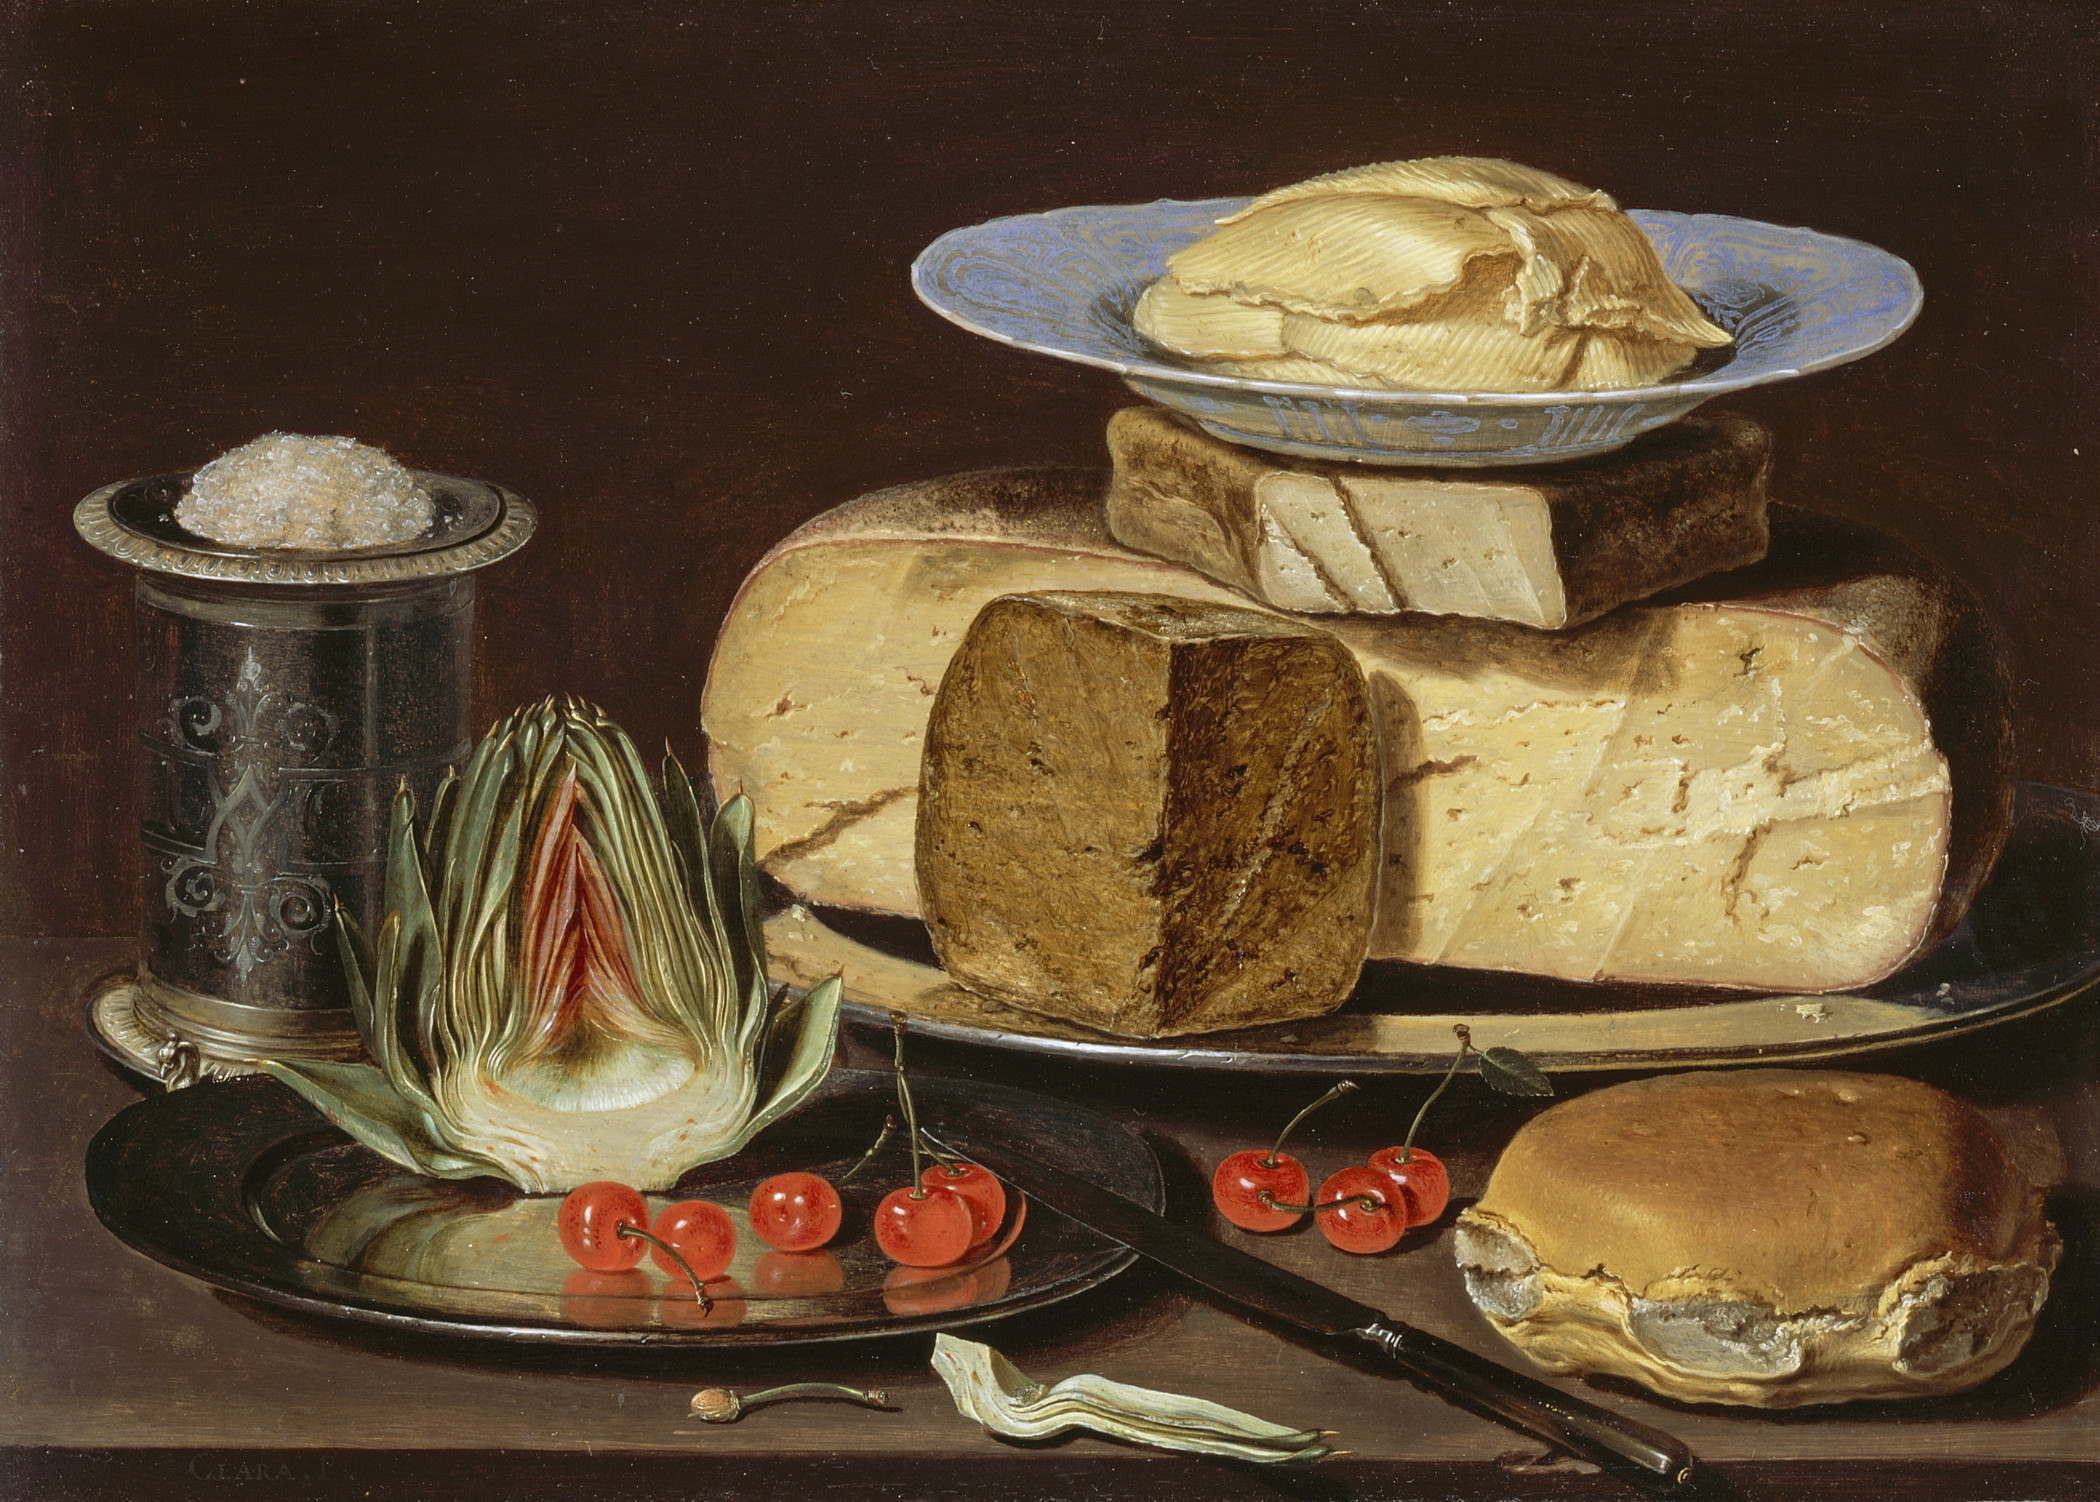 Still Life With Cheeses, Artechoke and Cherries, Clara Peeters, oil on wood, circa 1625